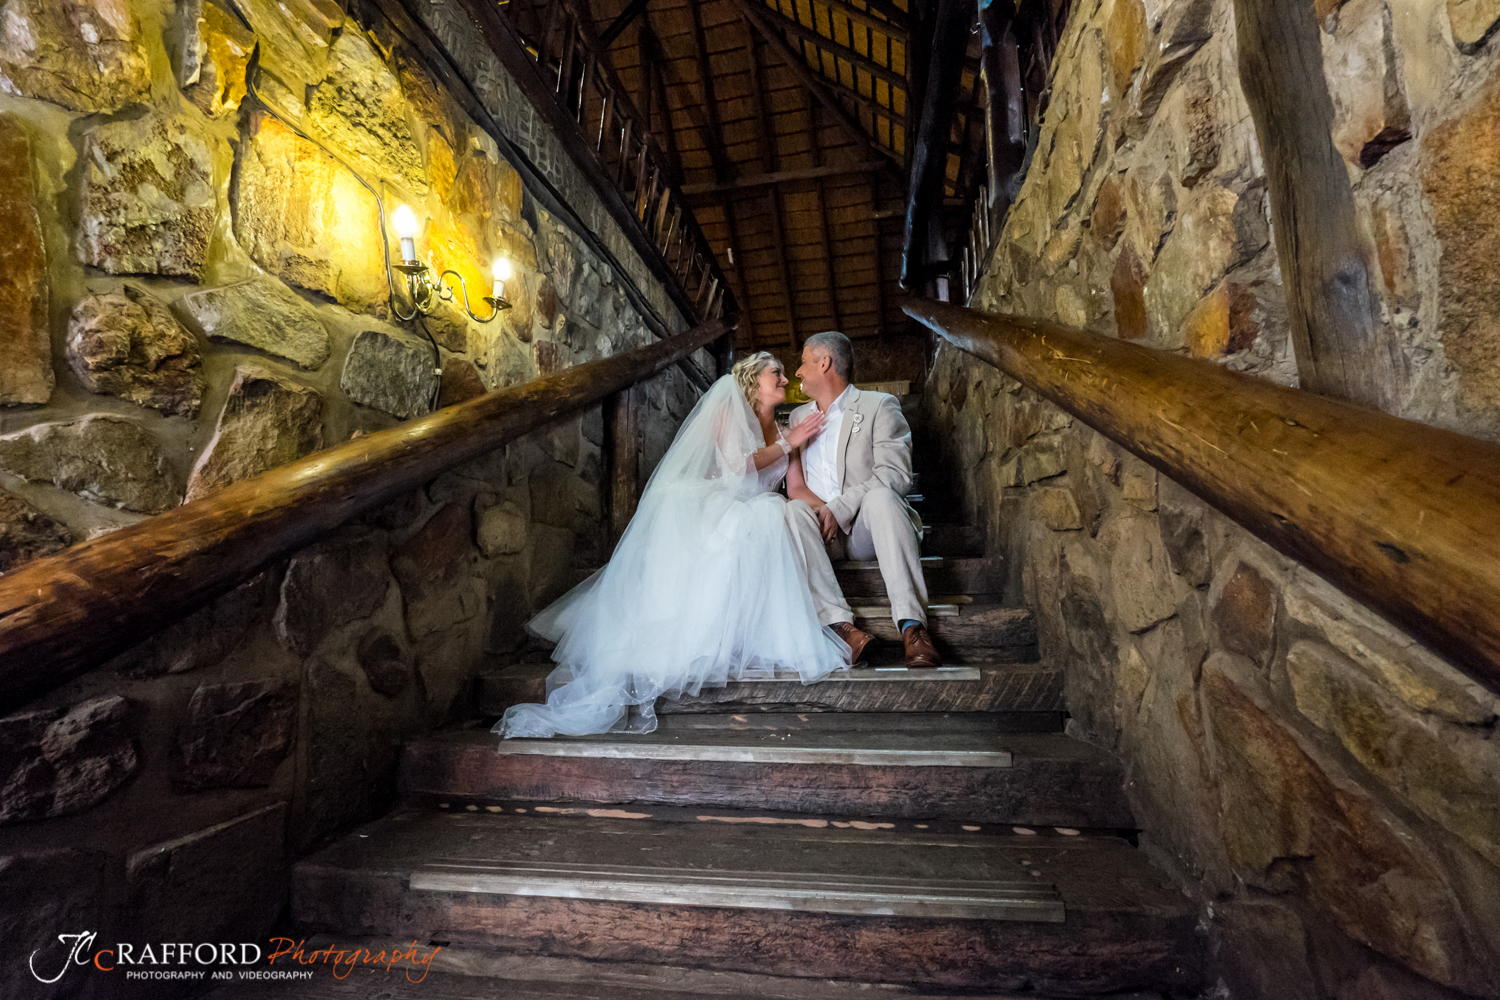 JC Crafford wedding photography at Farm Inn in Pretoria